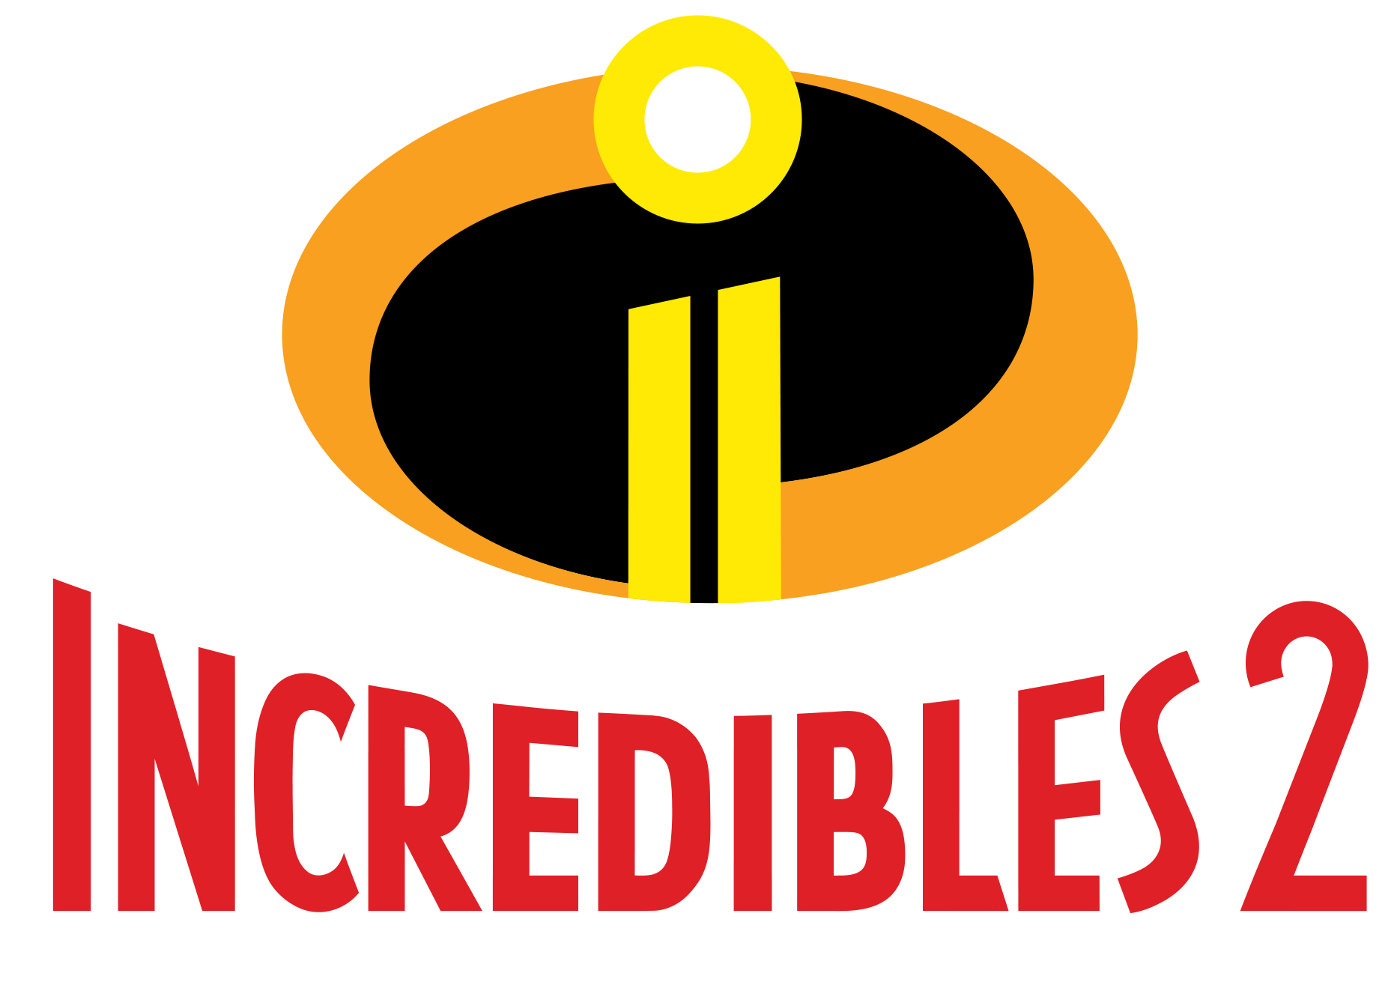 D23: New Plot Details for The Incredibles 2 and Toy Story 4